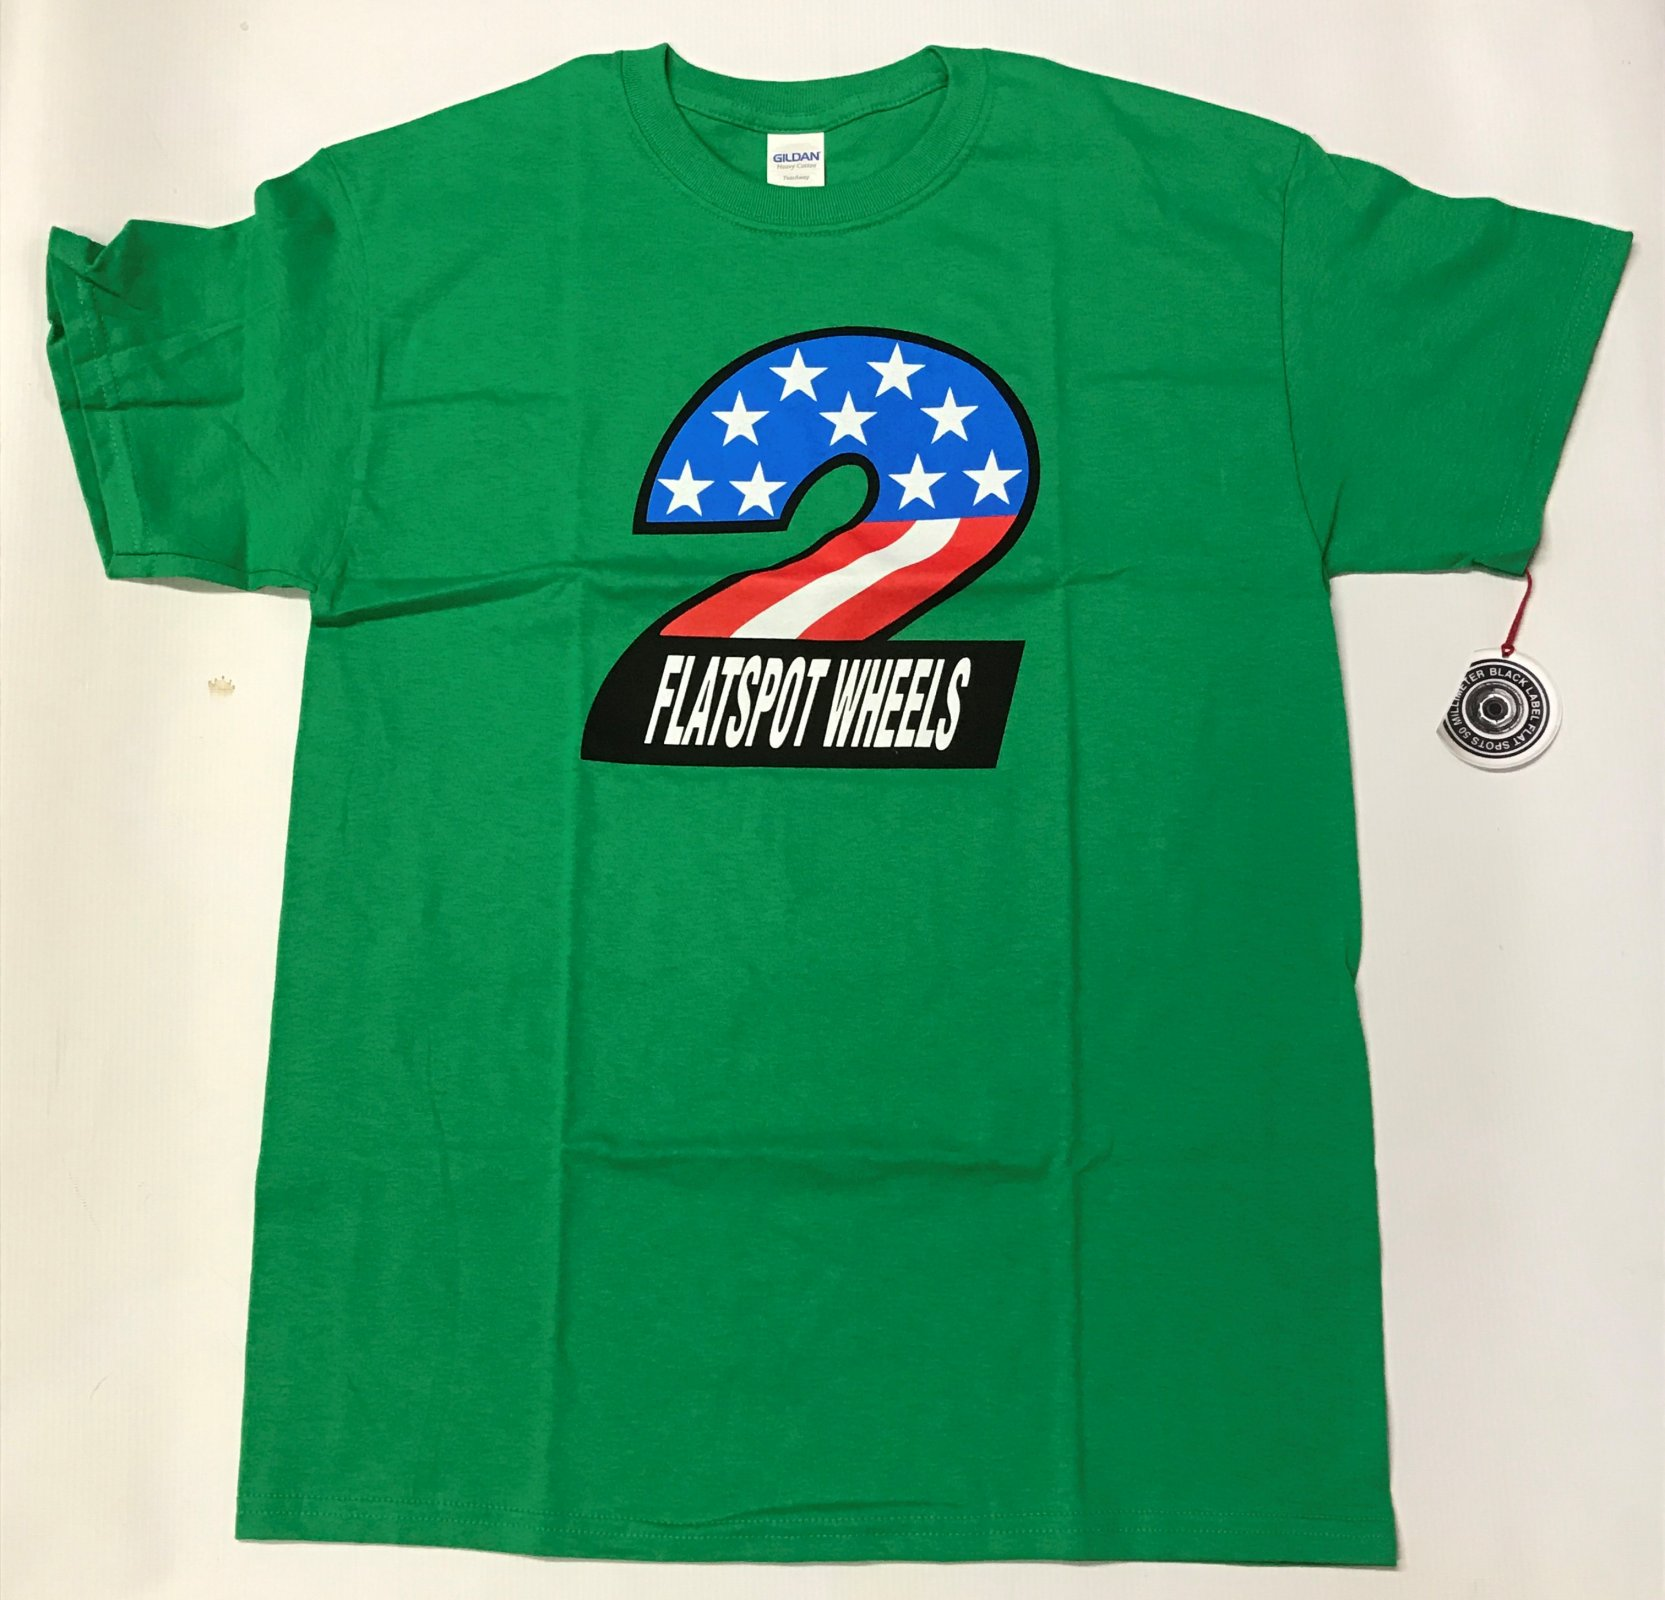 Dear, skating Flatspot s/s t shirt green